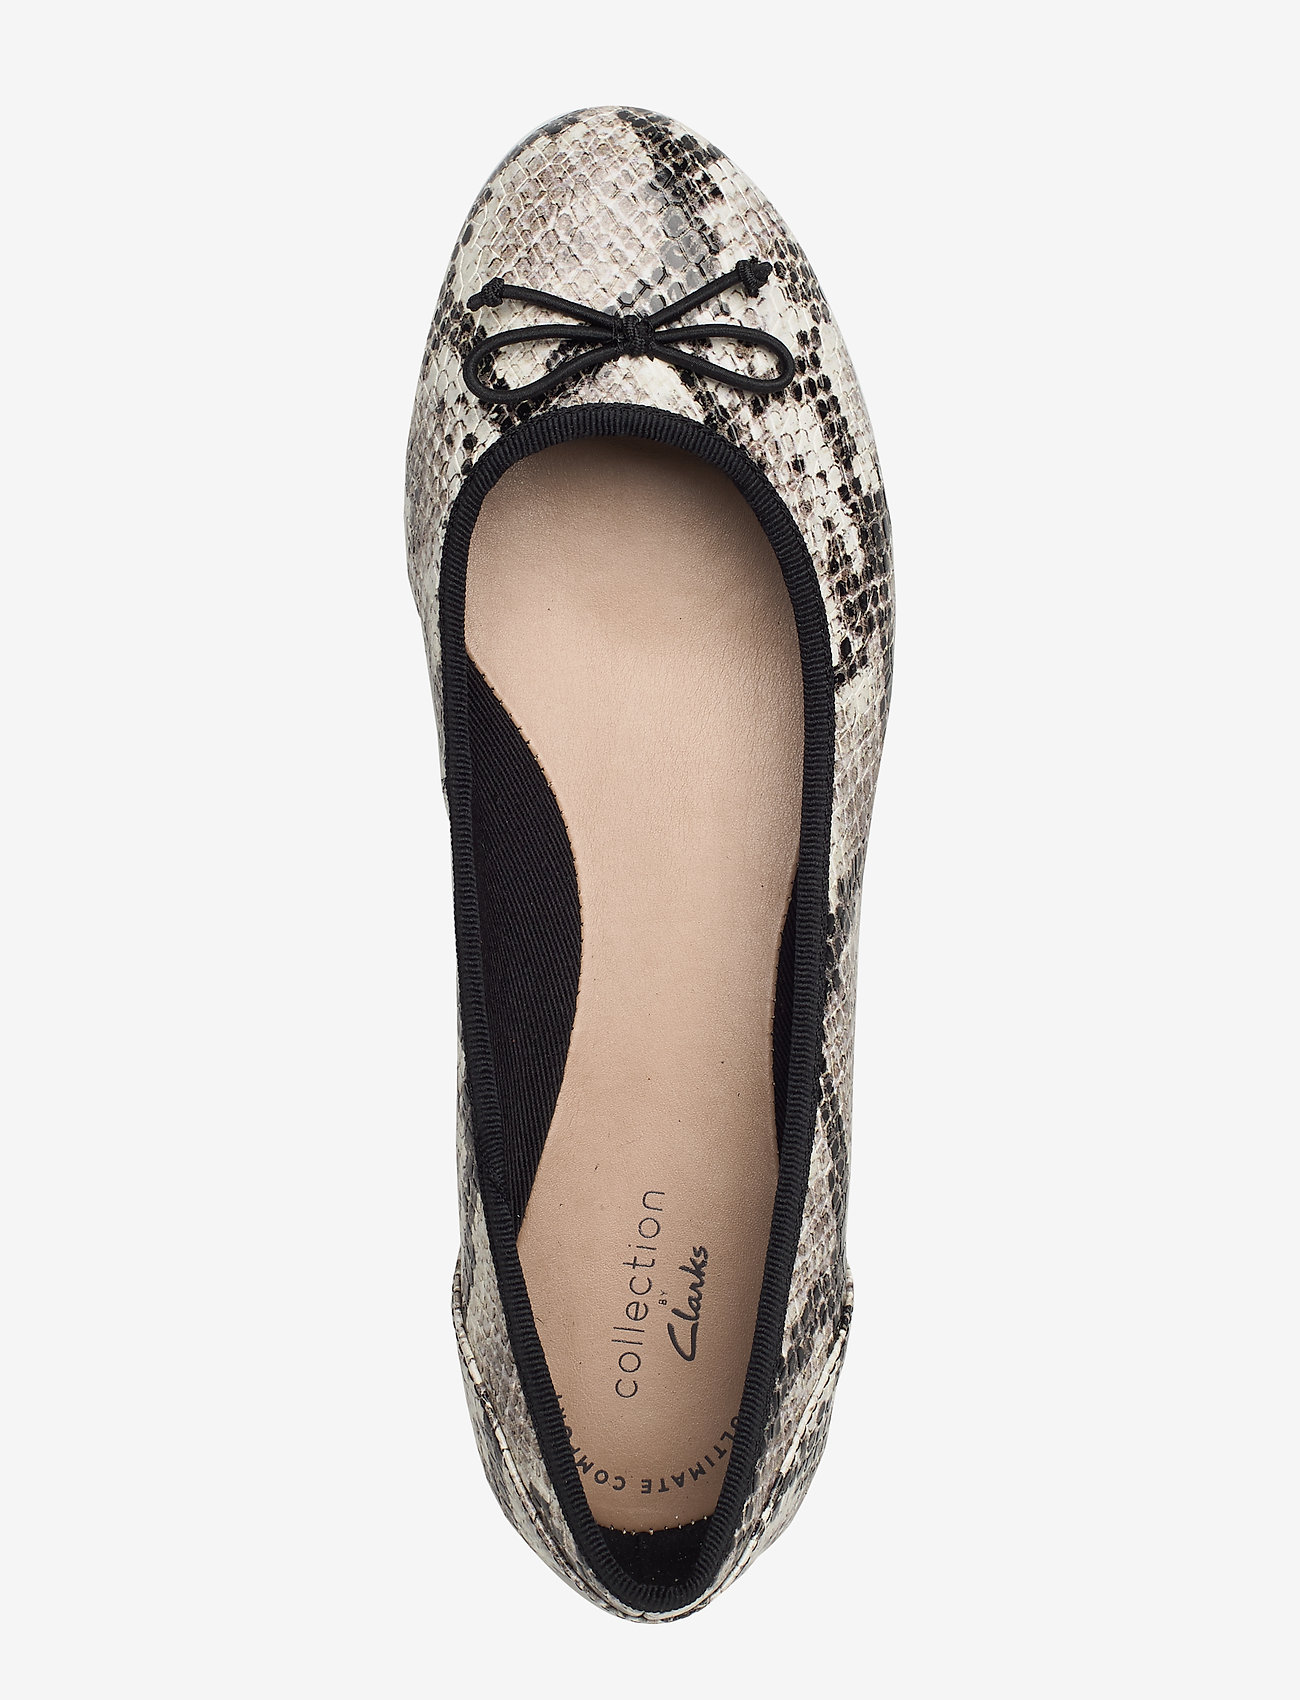 Couture Bloom (Grey Snake) - Clarks